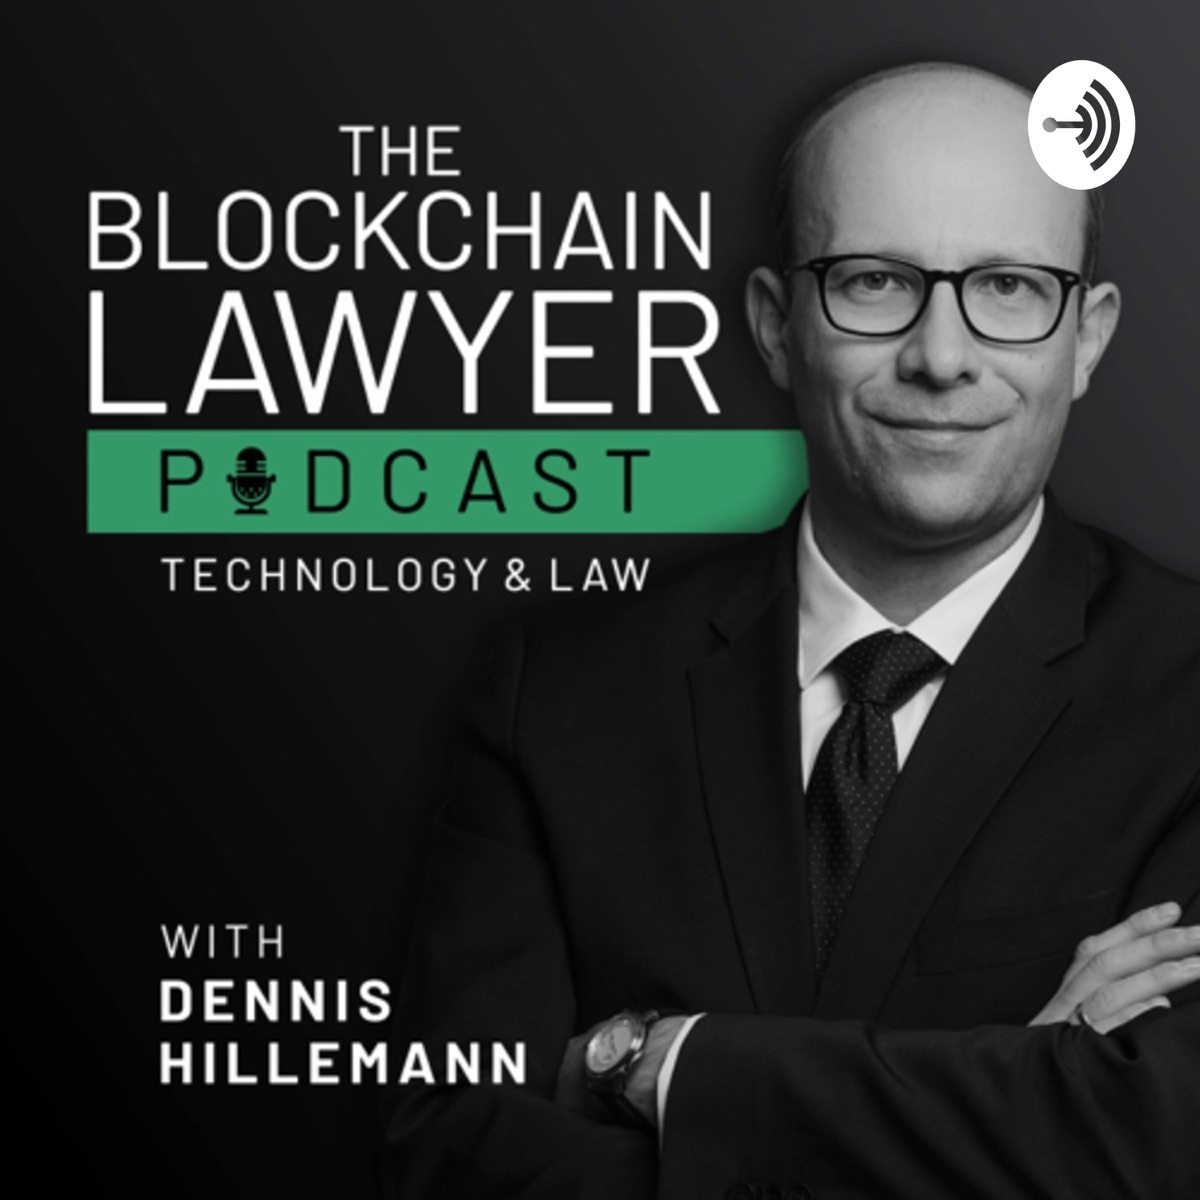 The Blockchain Lawyer